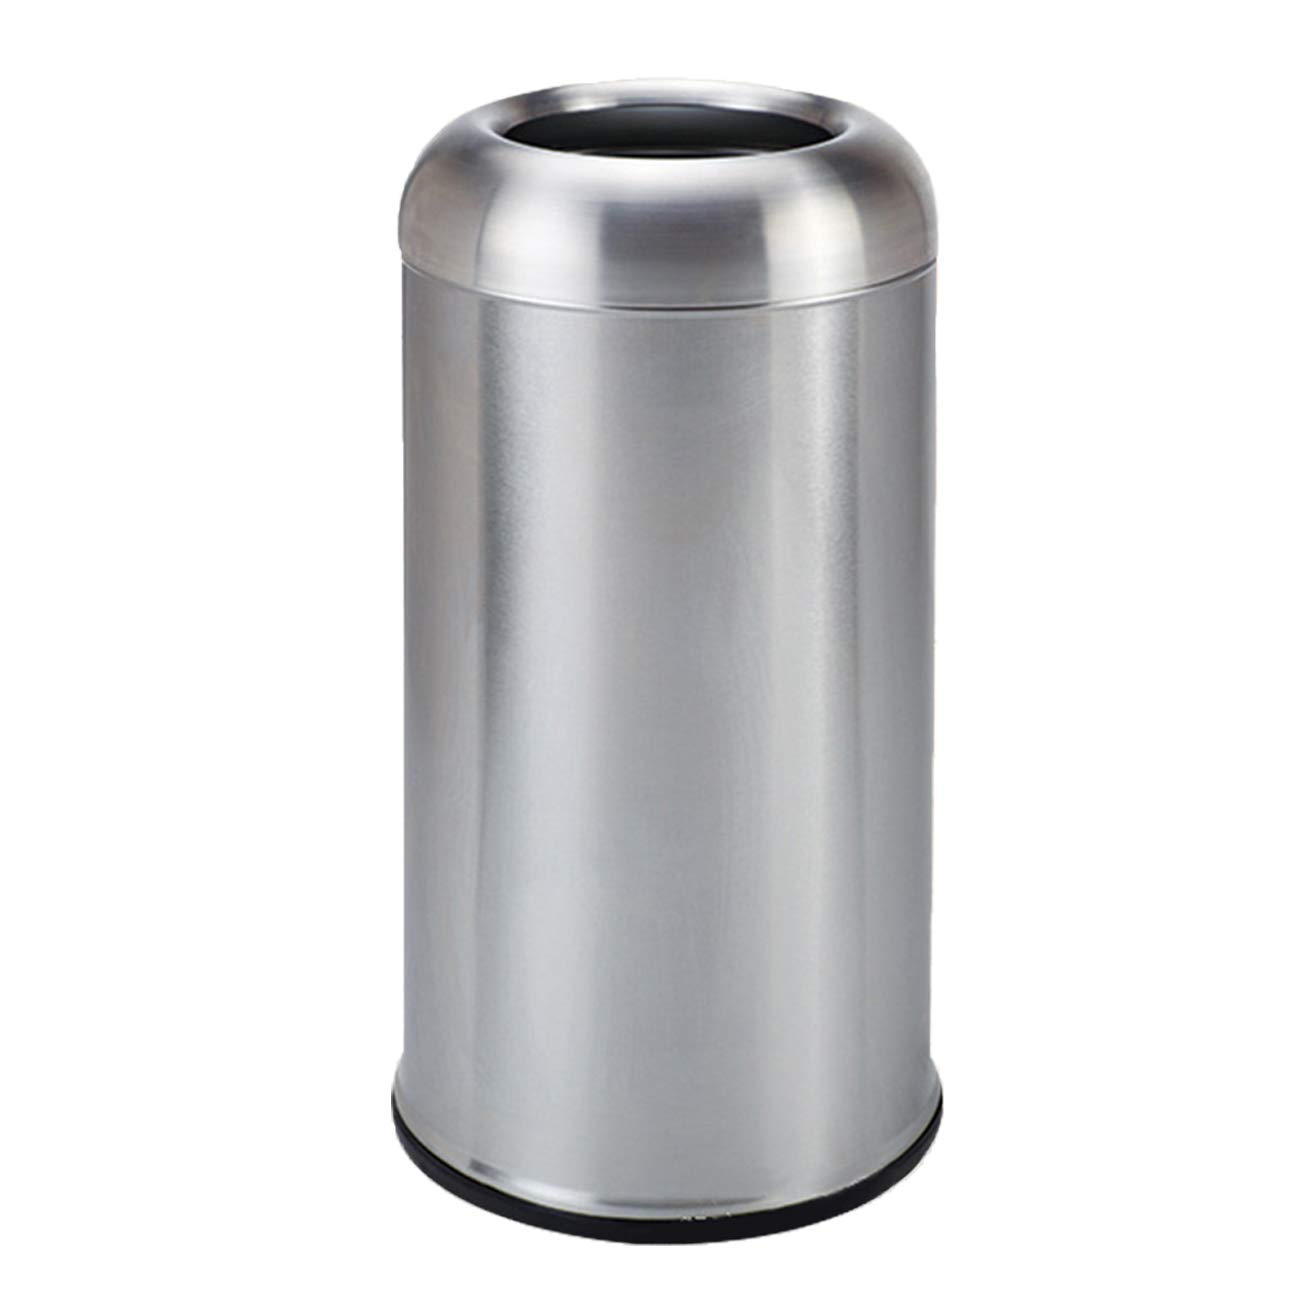 BEAMNOVA 115L / 30 Gal Trash Can Outdoor Indoor Garbage Enclosure with Lid Open Top Inside Cabinet Stainless Steel Industrial Waste Container, Silver